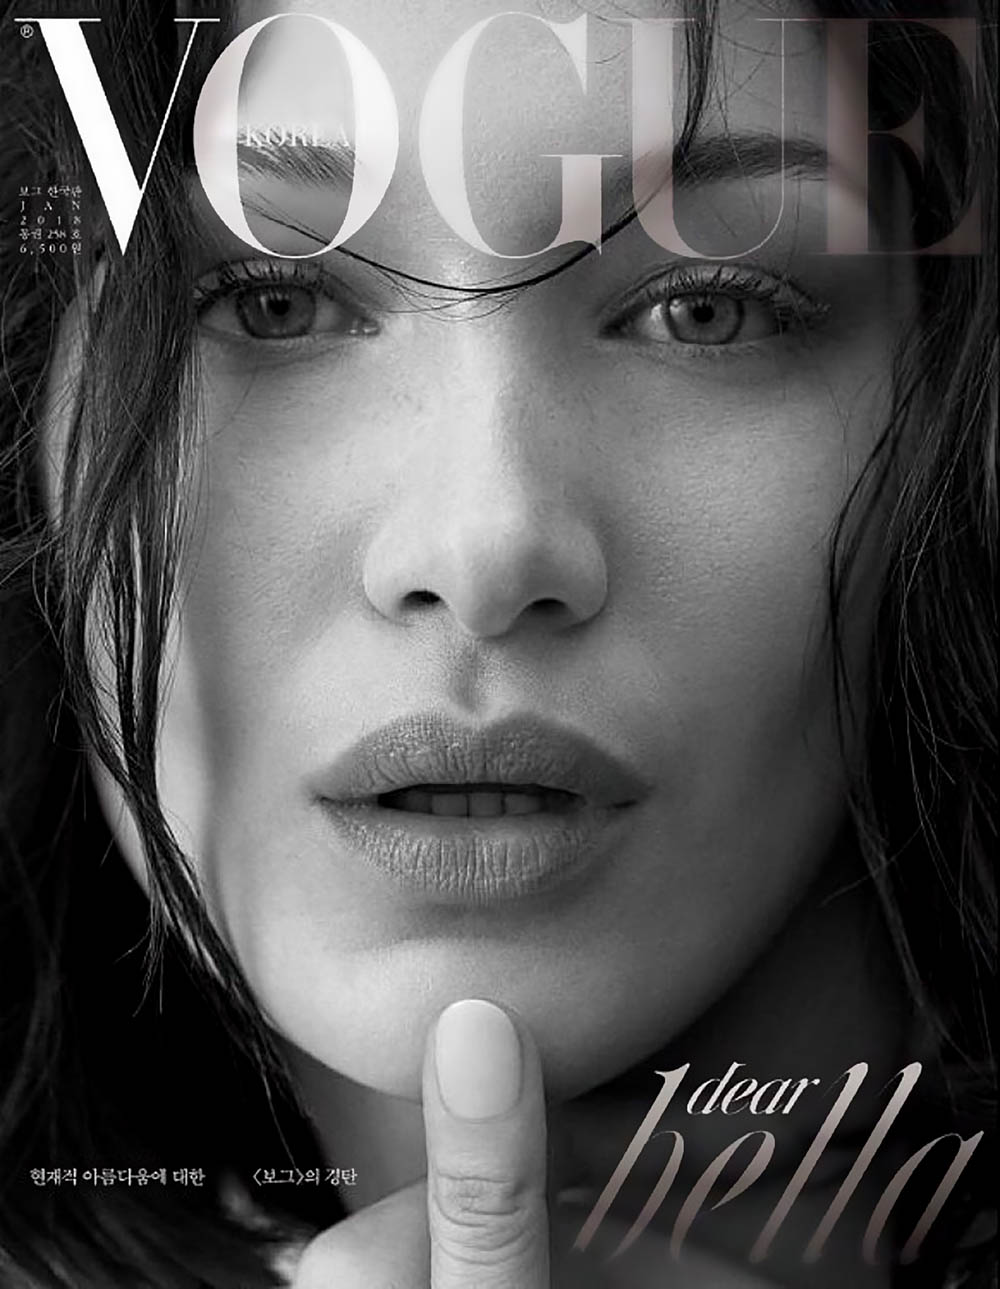 Bella Hadid covers Vogue Korea January 2018 by Ahn Joo Young